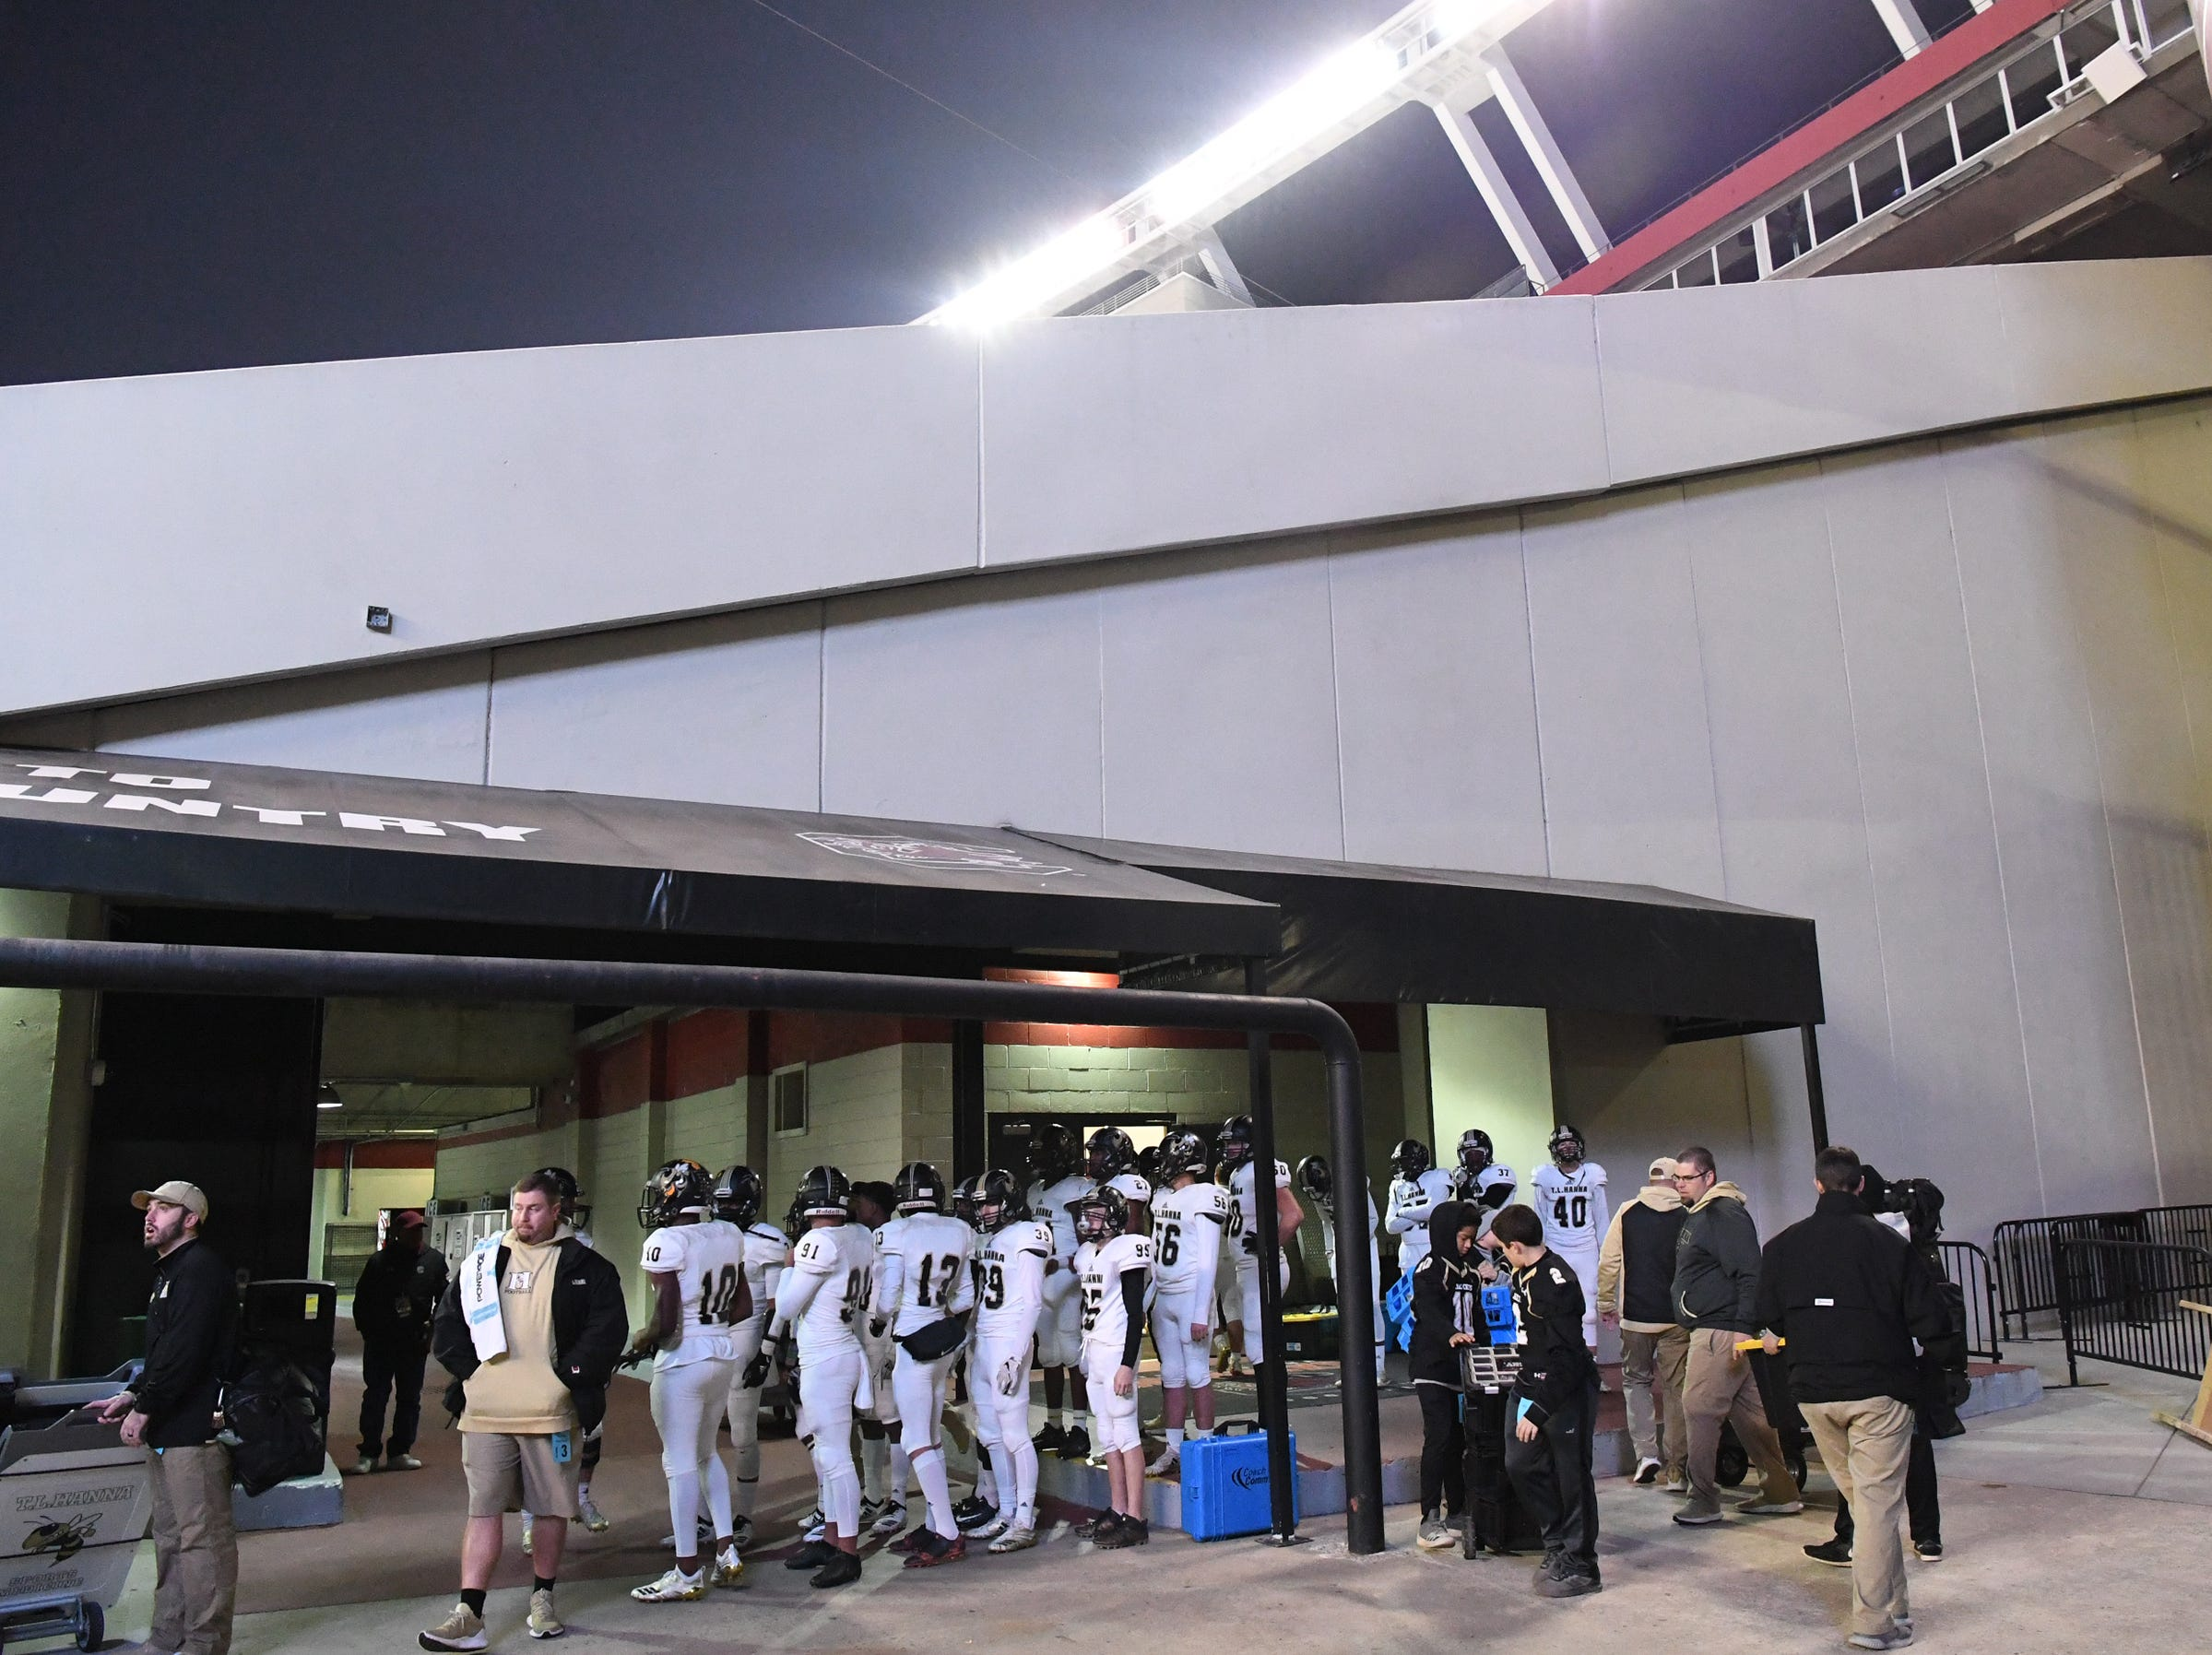 TL Hanna High School players line up to enter the field before the kickoff of the Class AAAAA state championship game at Williams-Brice Stadium in Columbia Saturday, December 8, 2018.